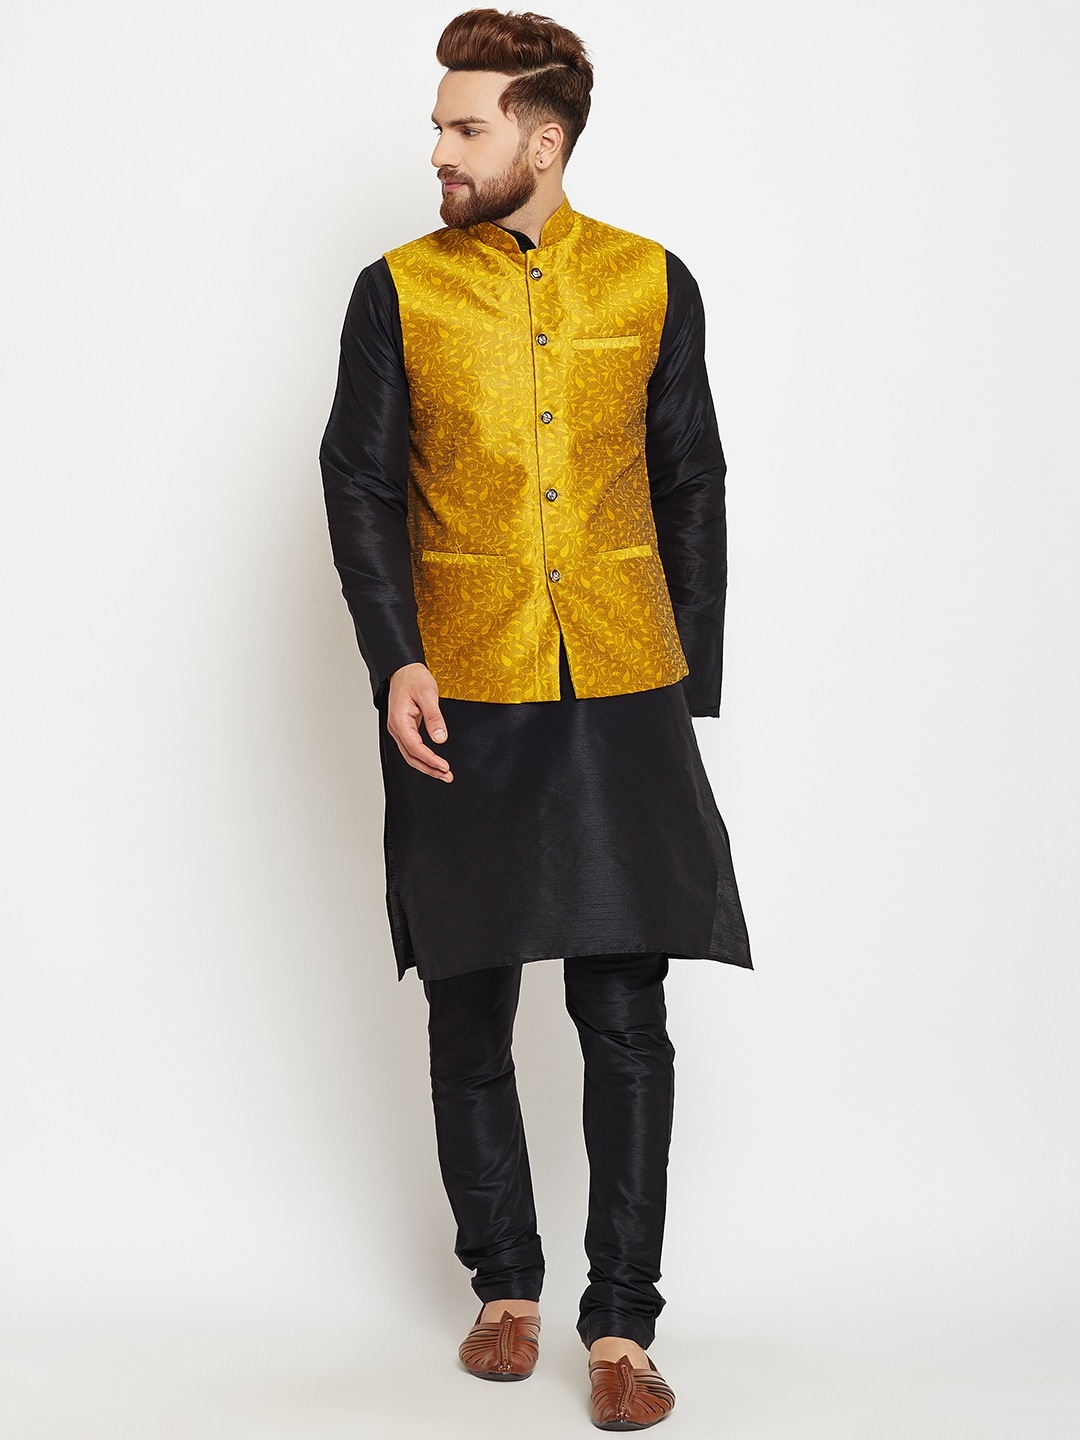 SOJANYA Men Black & Yellow Self Design Kurta Pyjamas with Waistcoat image